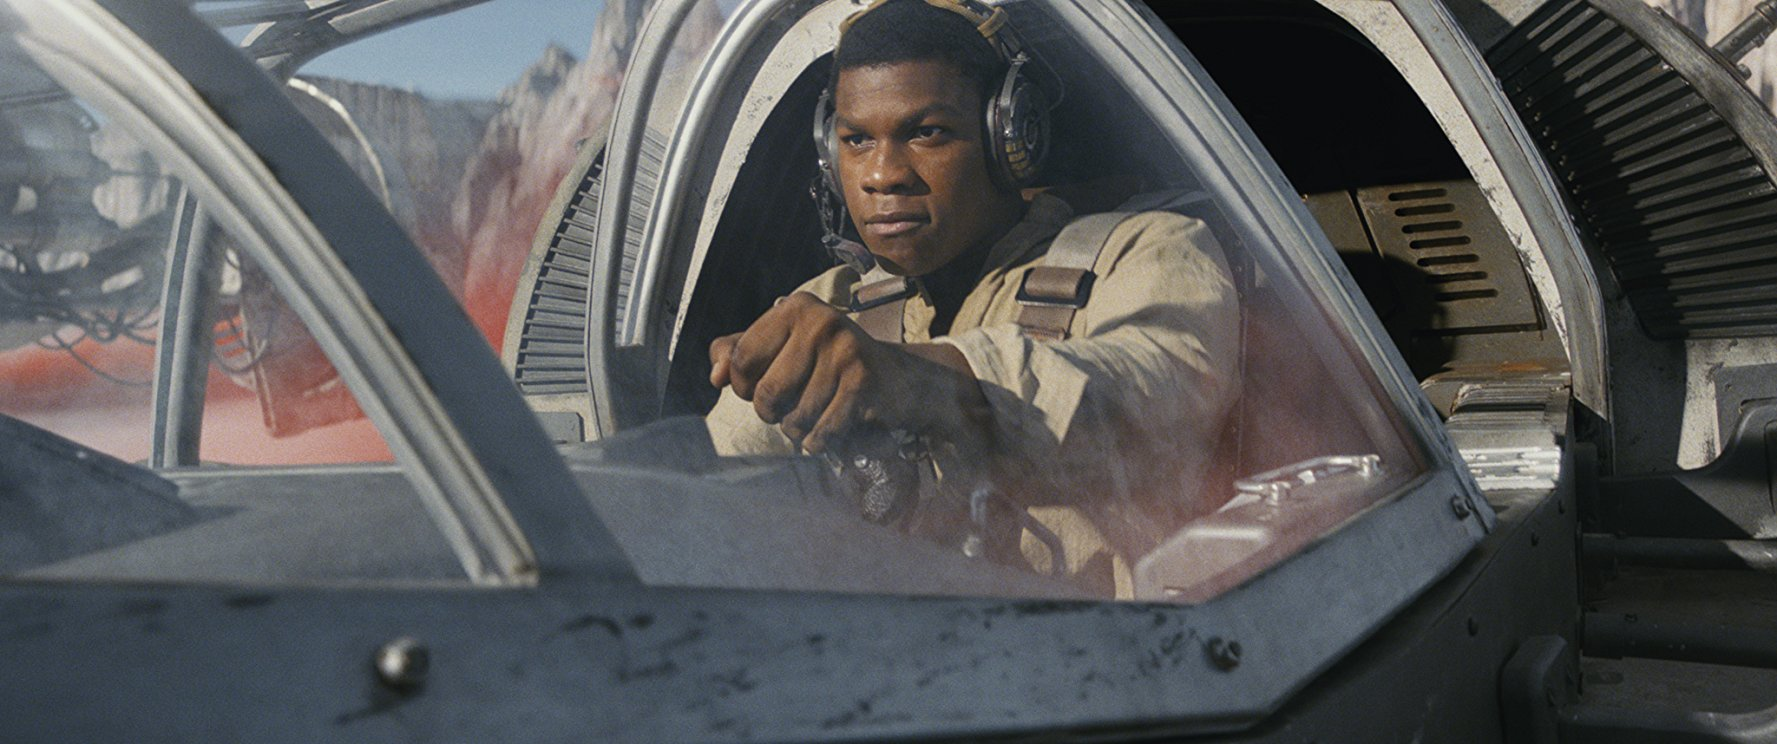 Star Wars: why The Last Jedi is so important for Finn